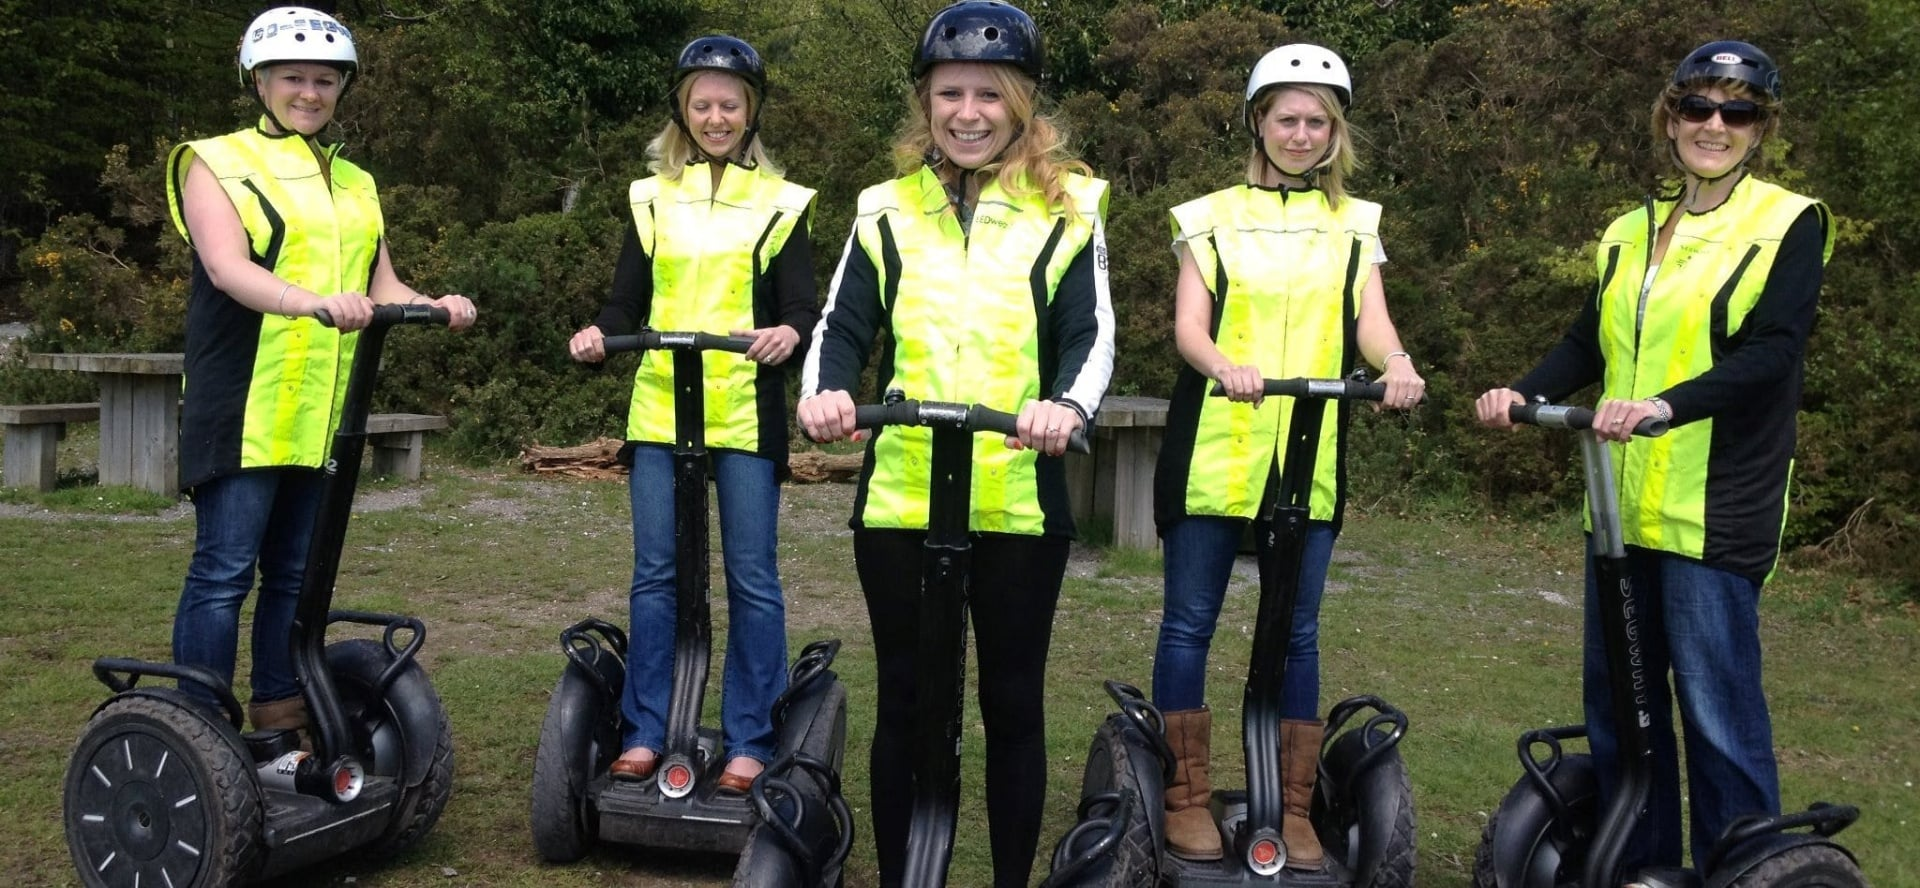 Segway Riding Experience in Devon-4